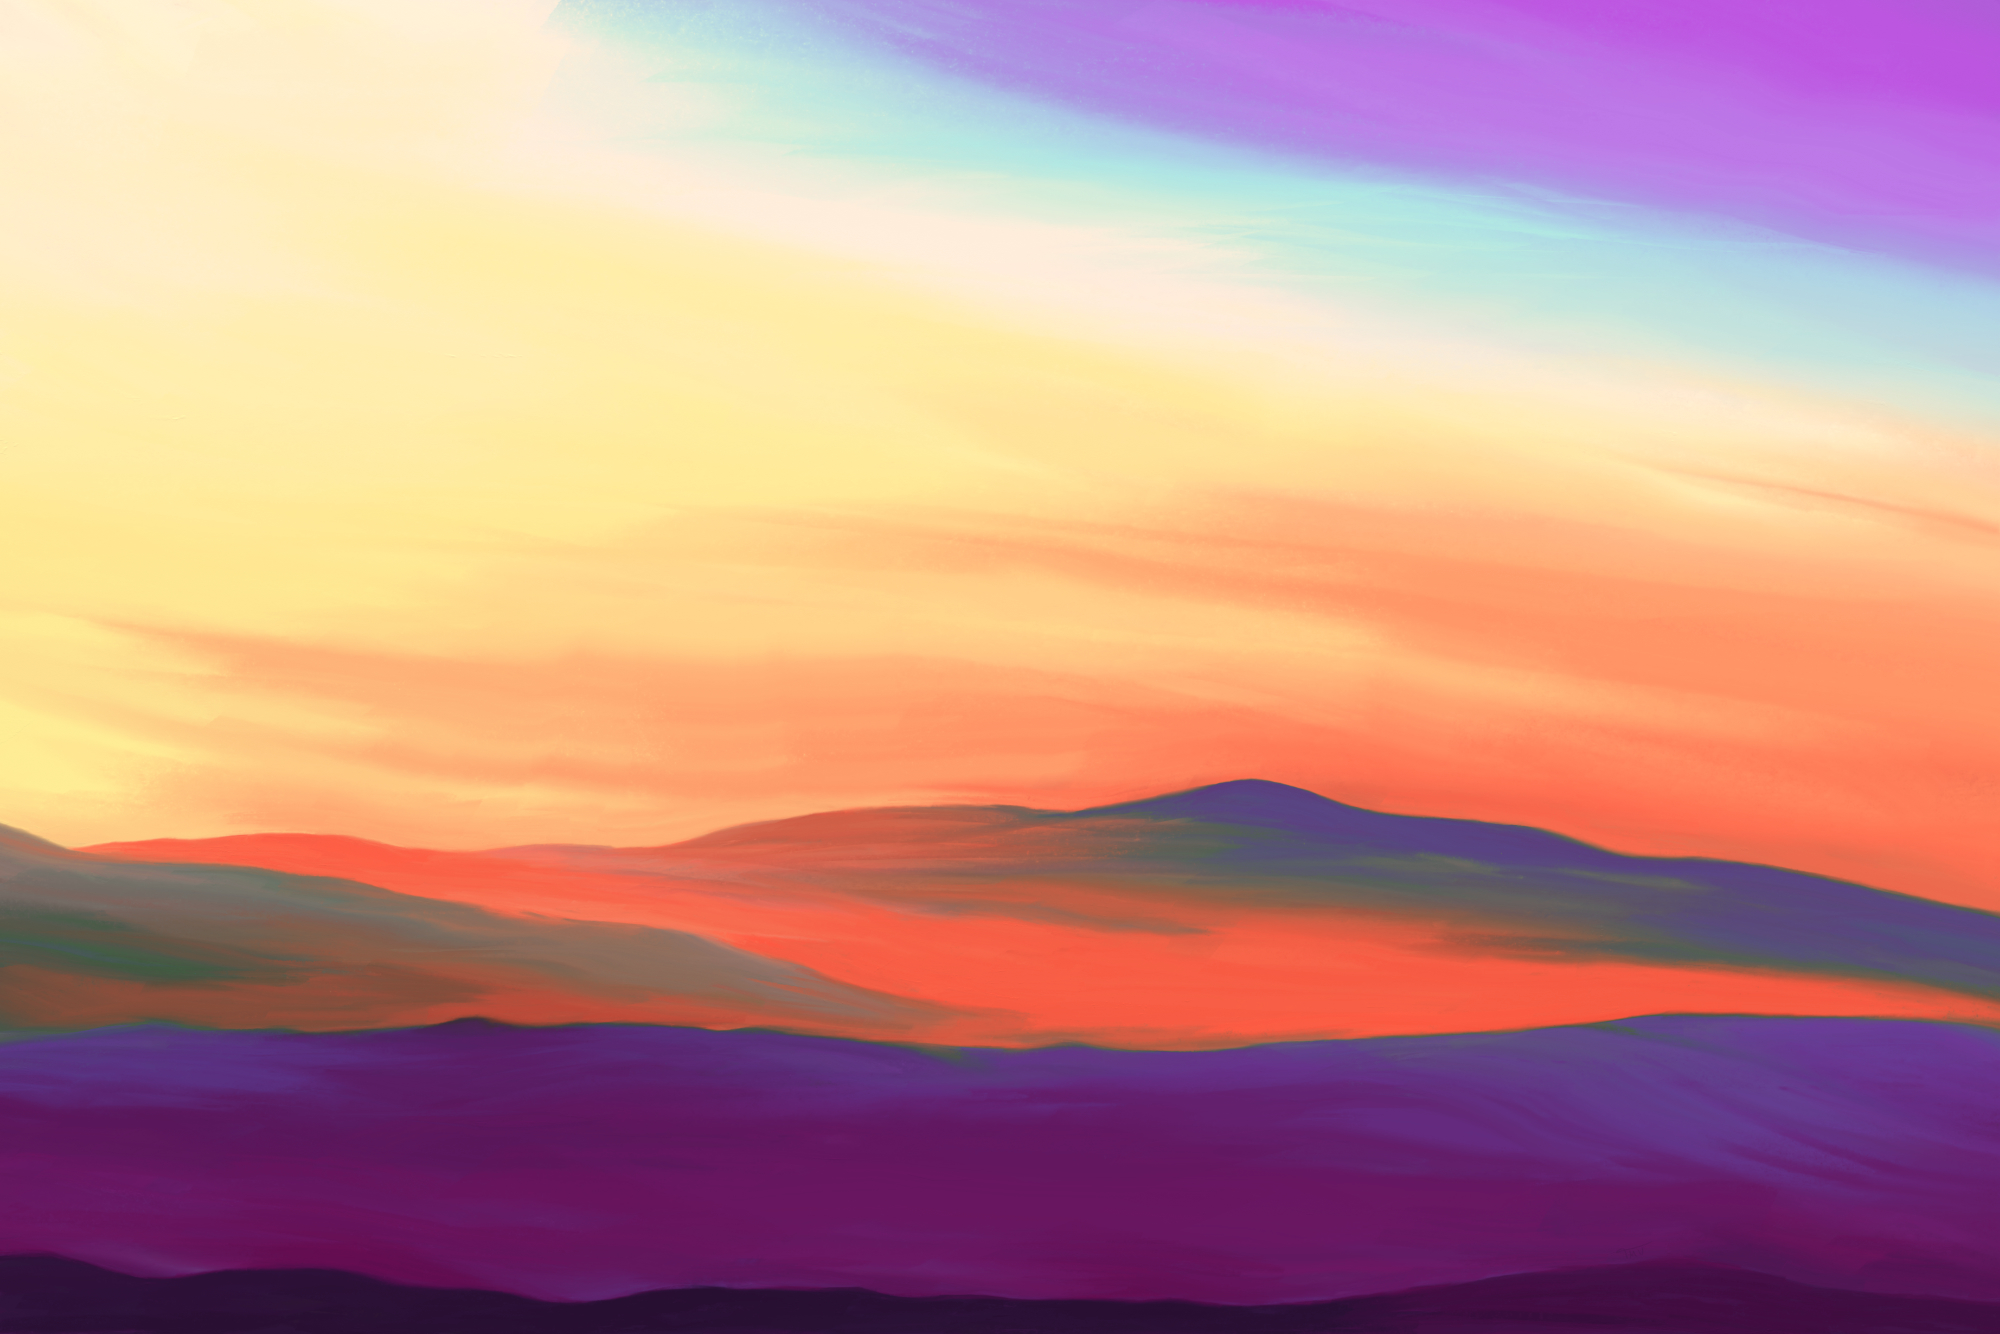 Digital painting of a landscape at sunrise in mystical colors